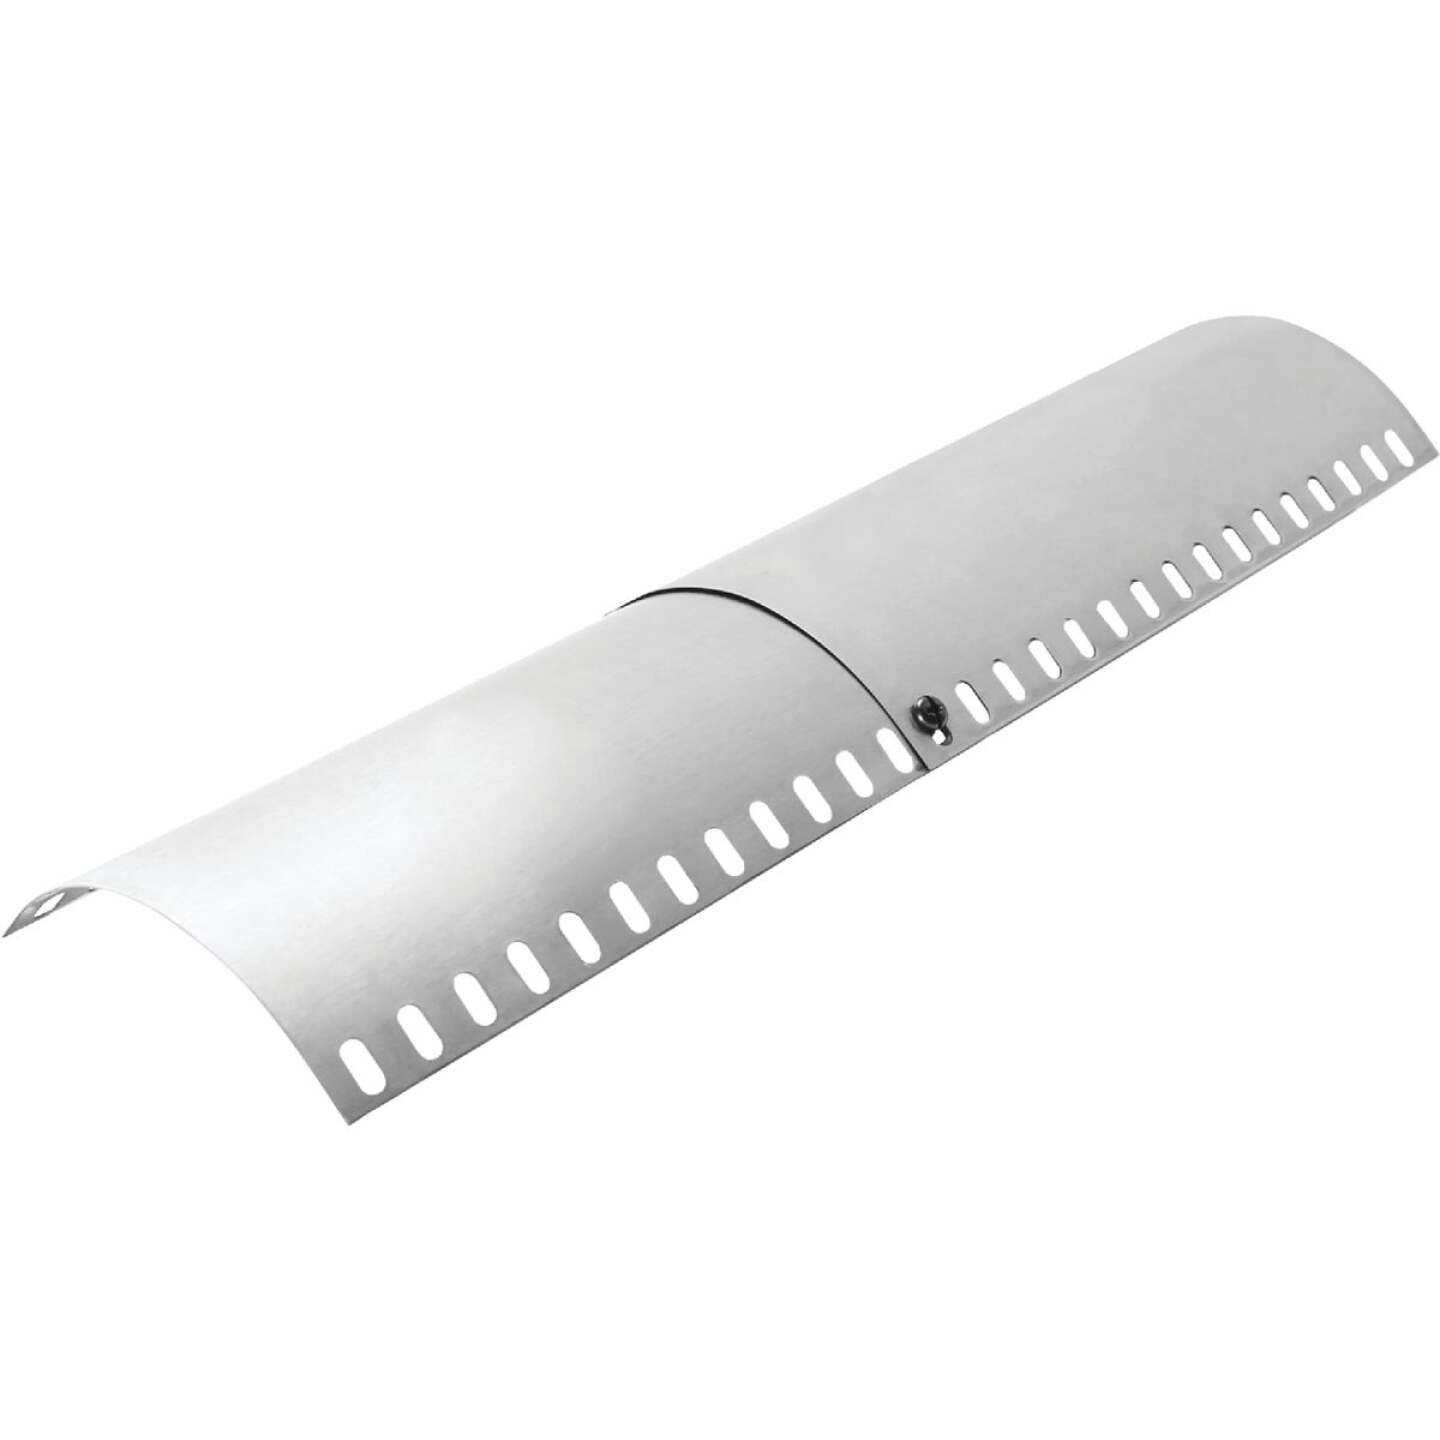 GrillPro 12 In. to 18 In. Porcelain-Coated Universal Adjustable Heat Plate Image 1